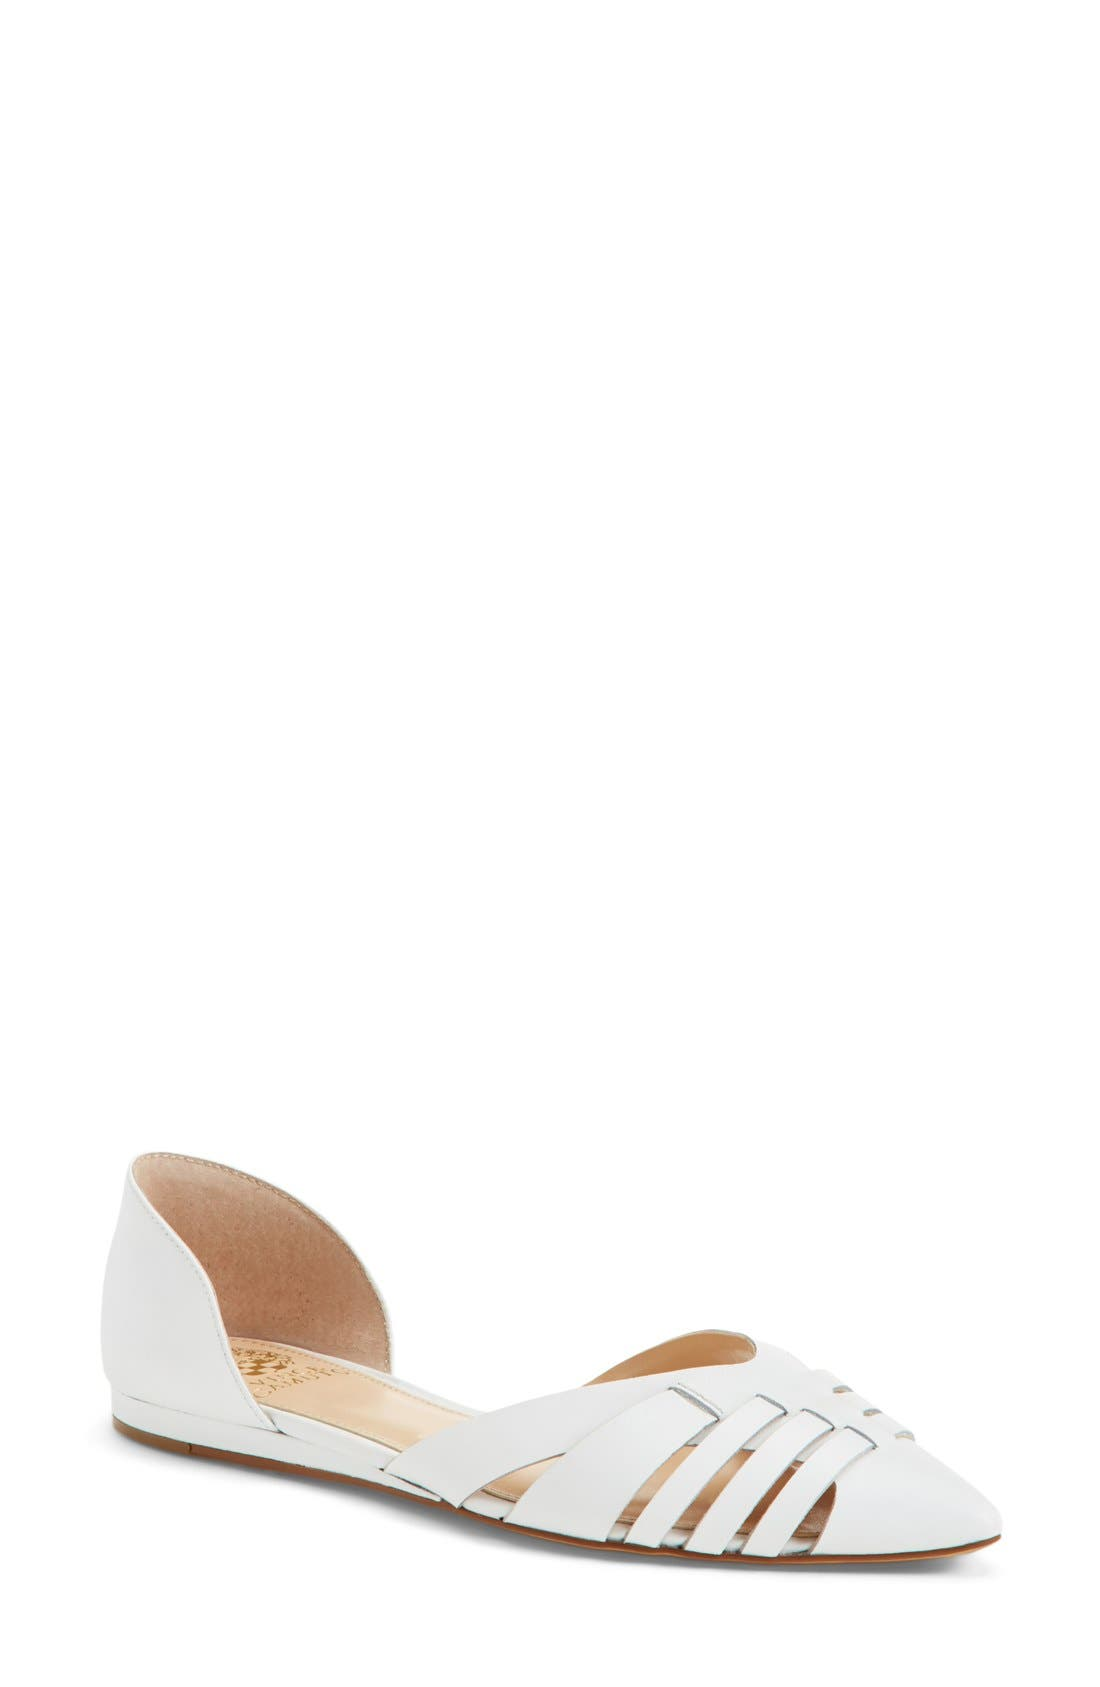 Main Image - Vince Camuto 'Hallie' Woven Leather d'Orsay Flat (Women) (Nordstrom Exclusive)